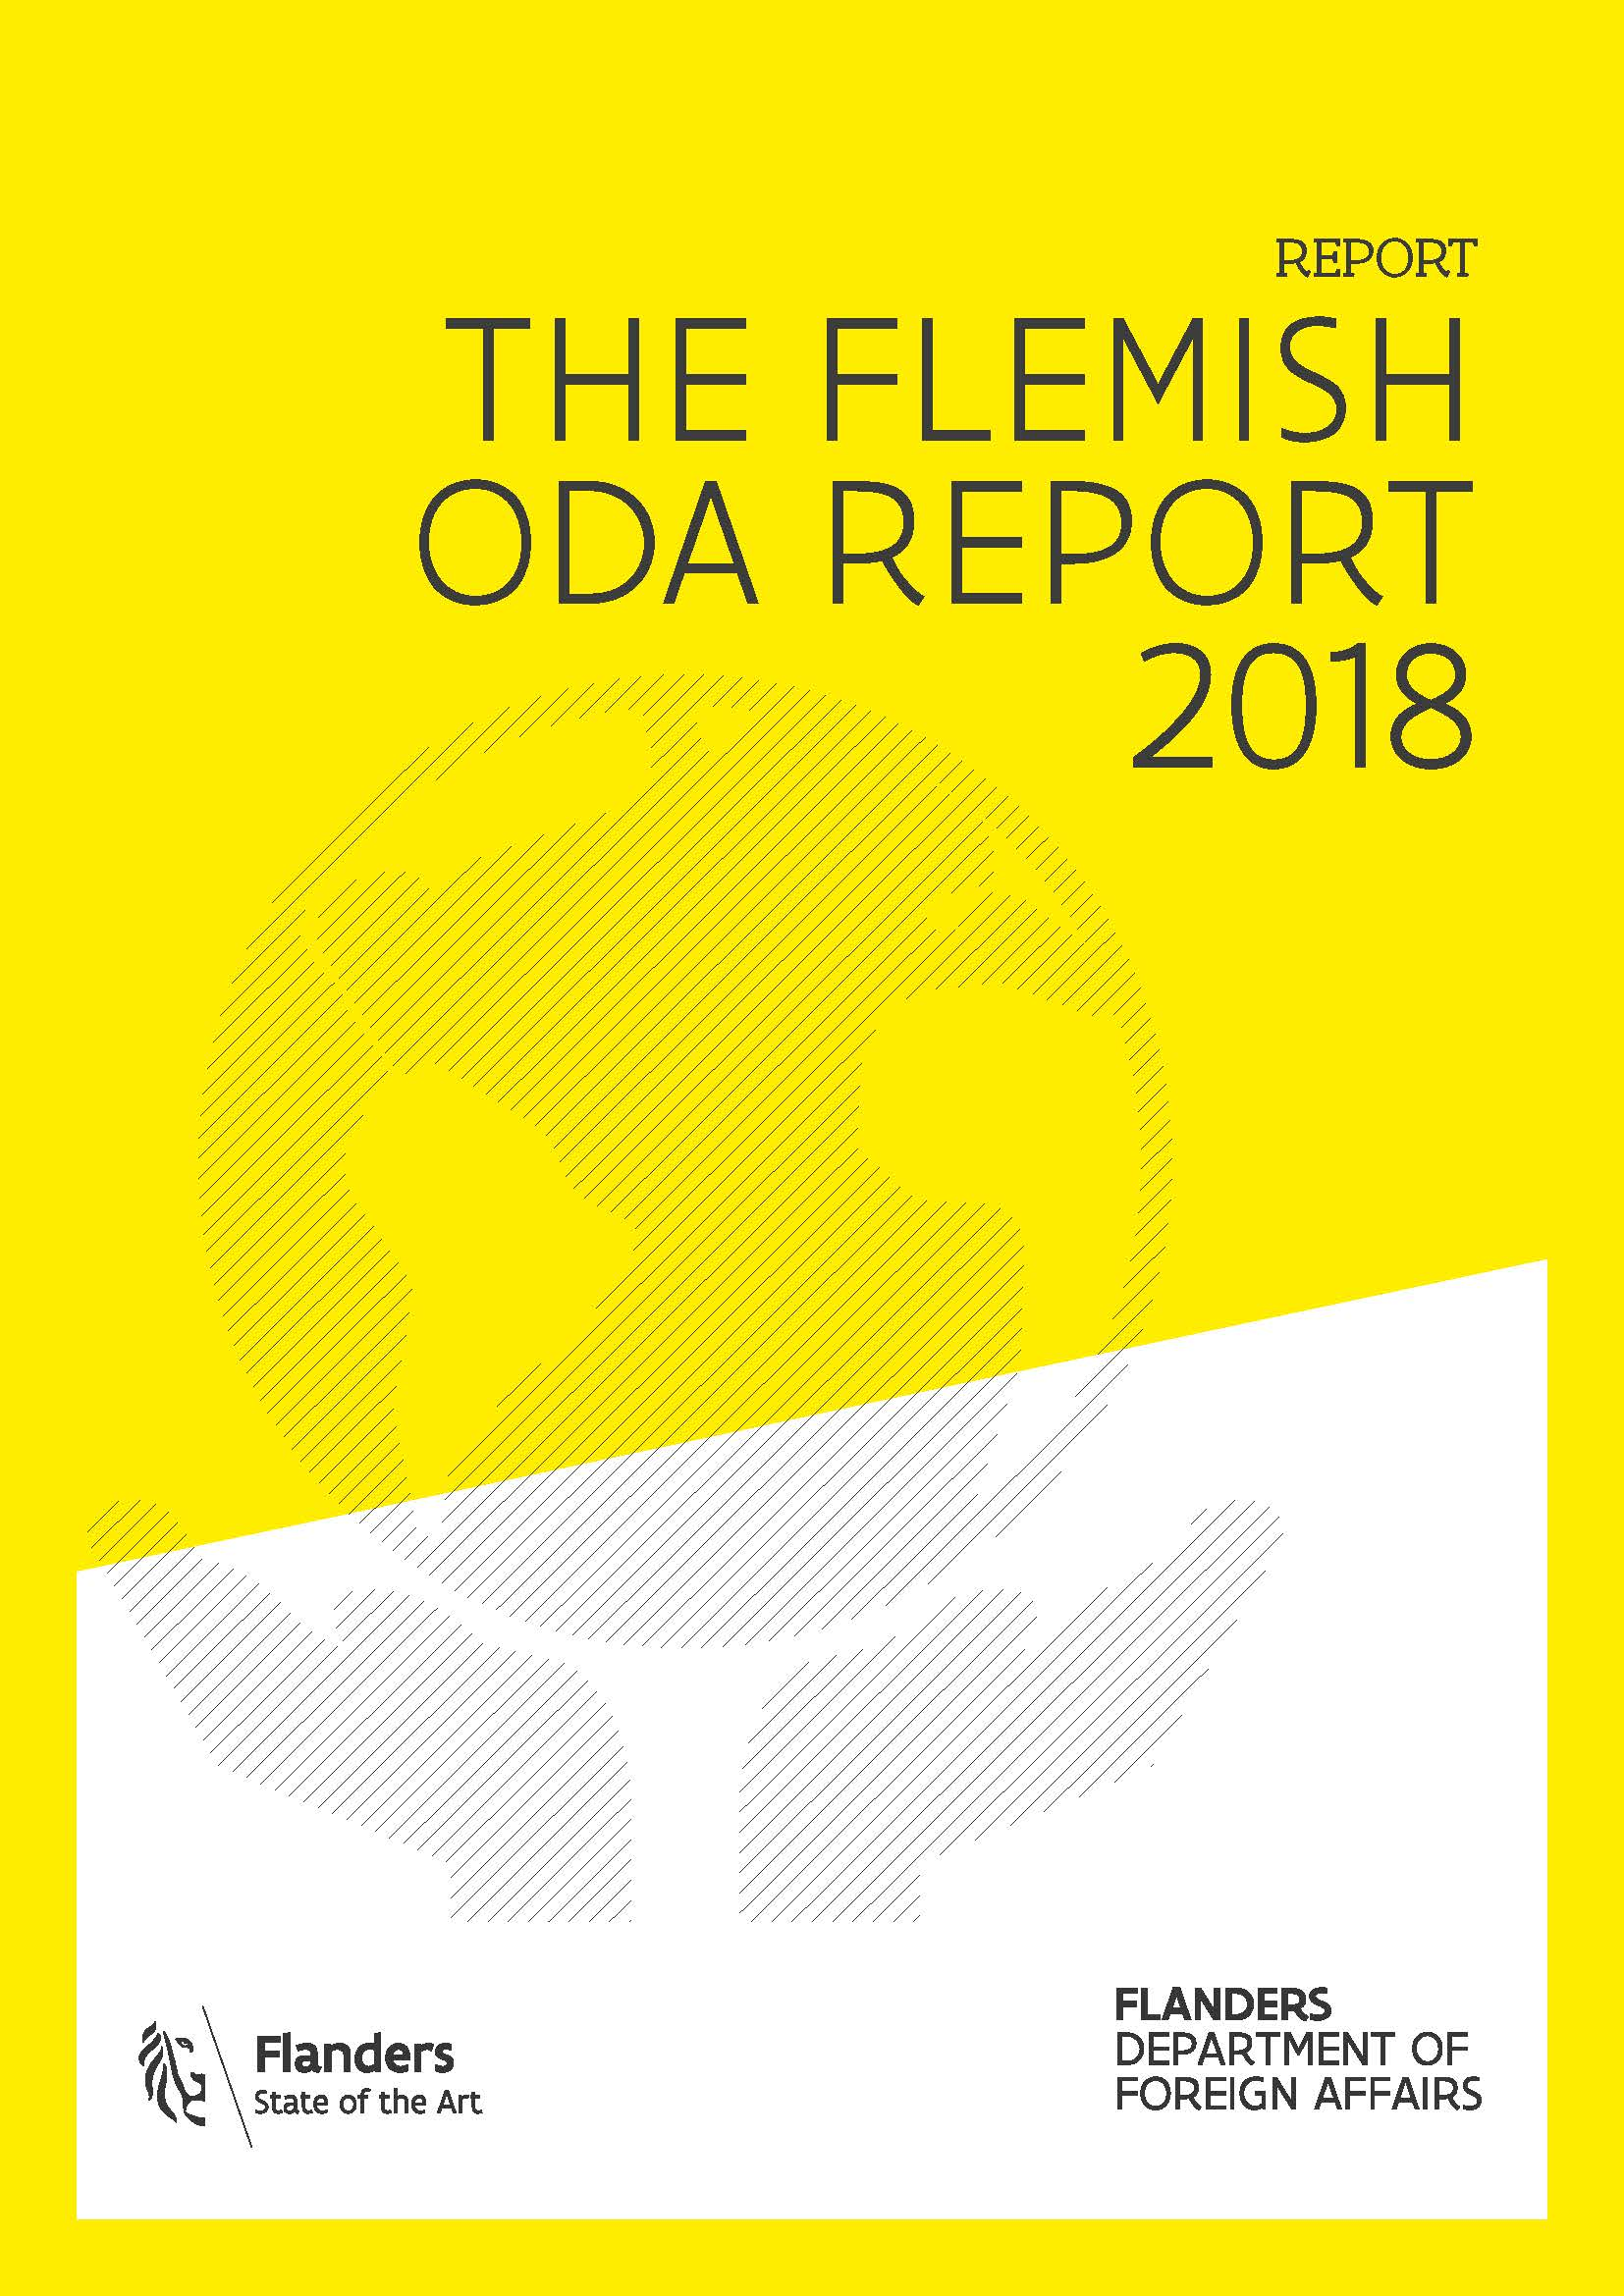 Flemish ODA report 2018 cover